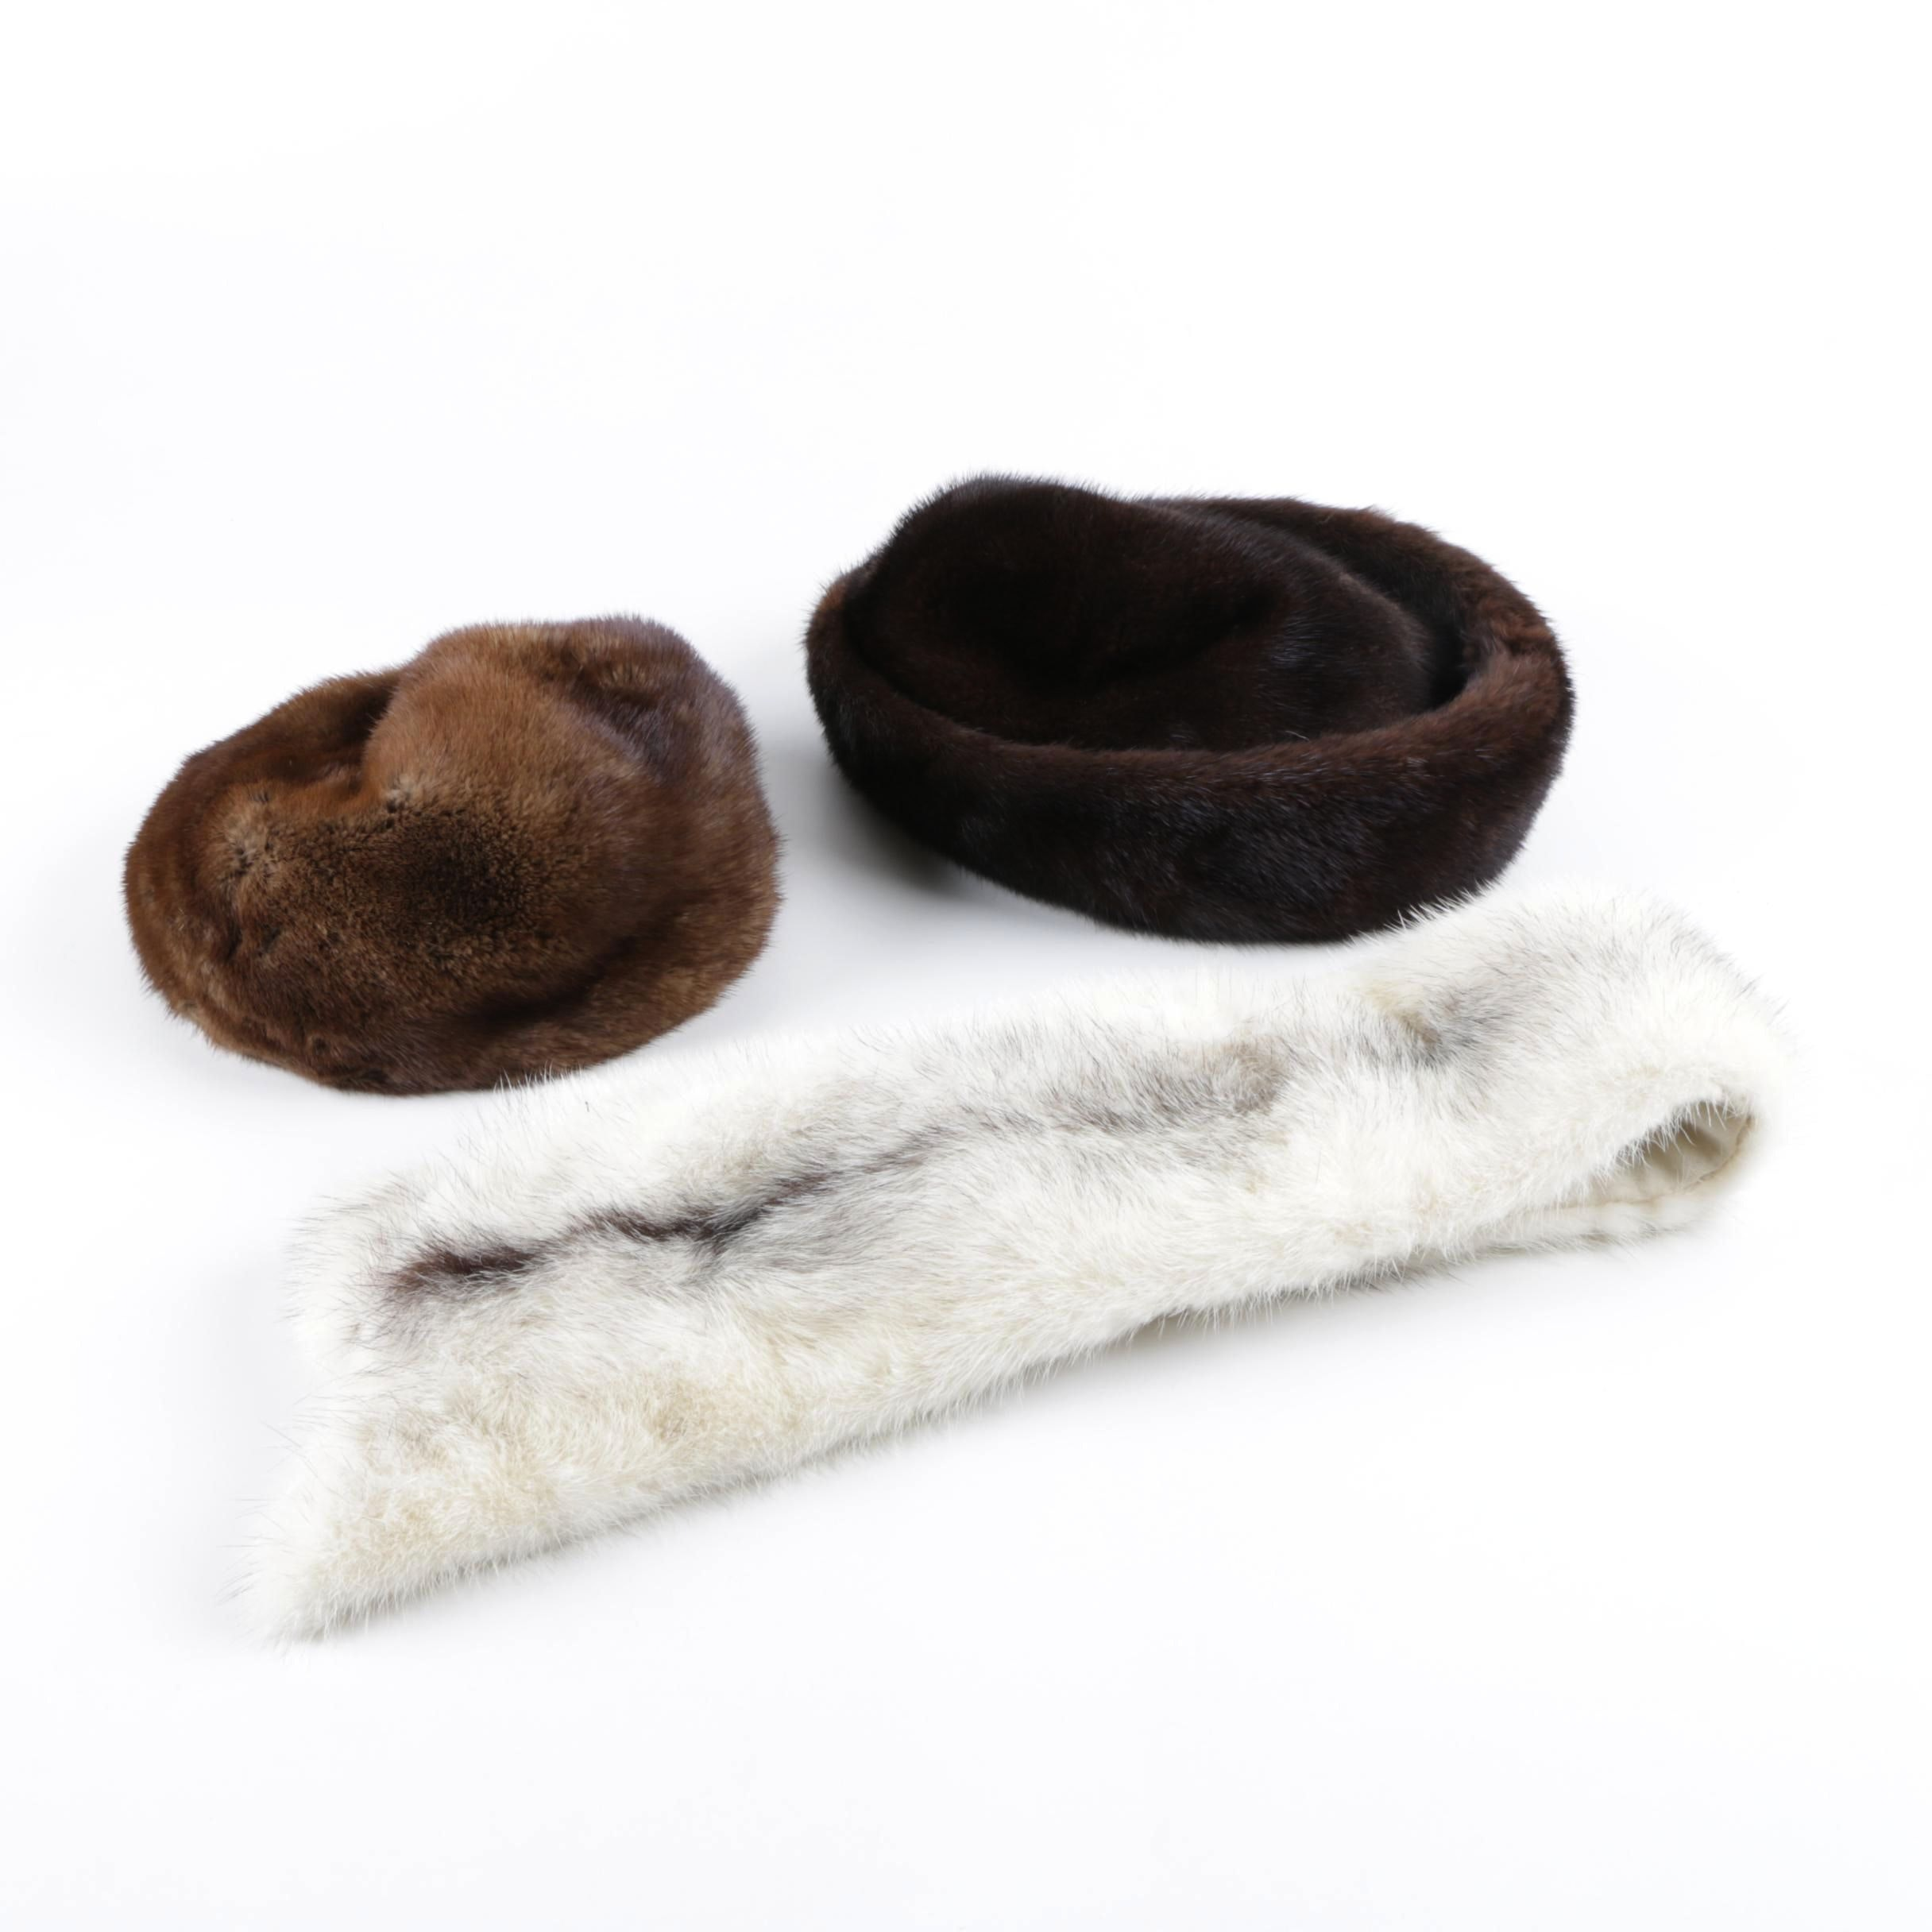 Vintage Fur Hats and Miss Alice for Lord & Taylor Mink Fur Collar